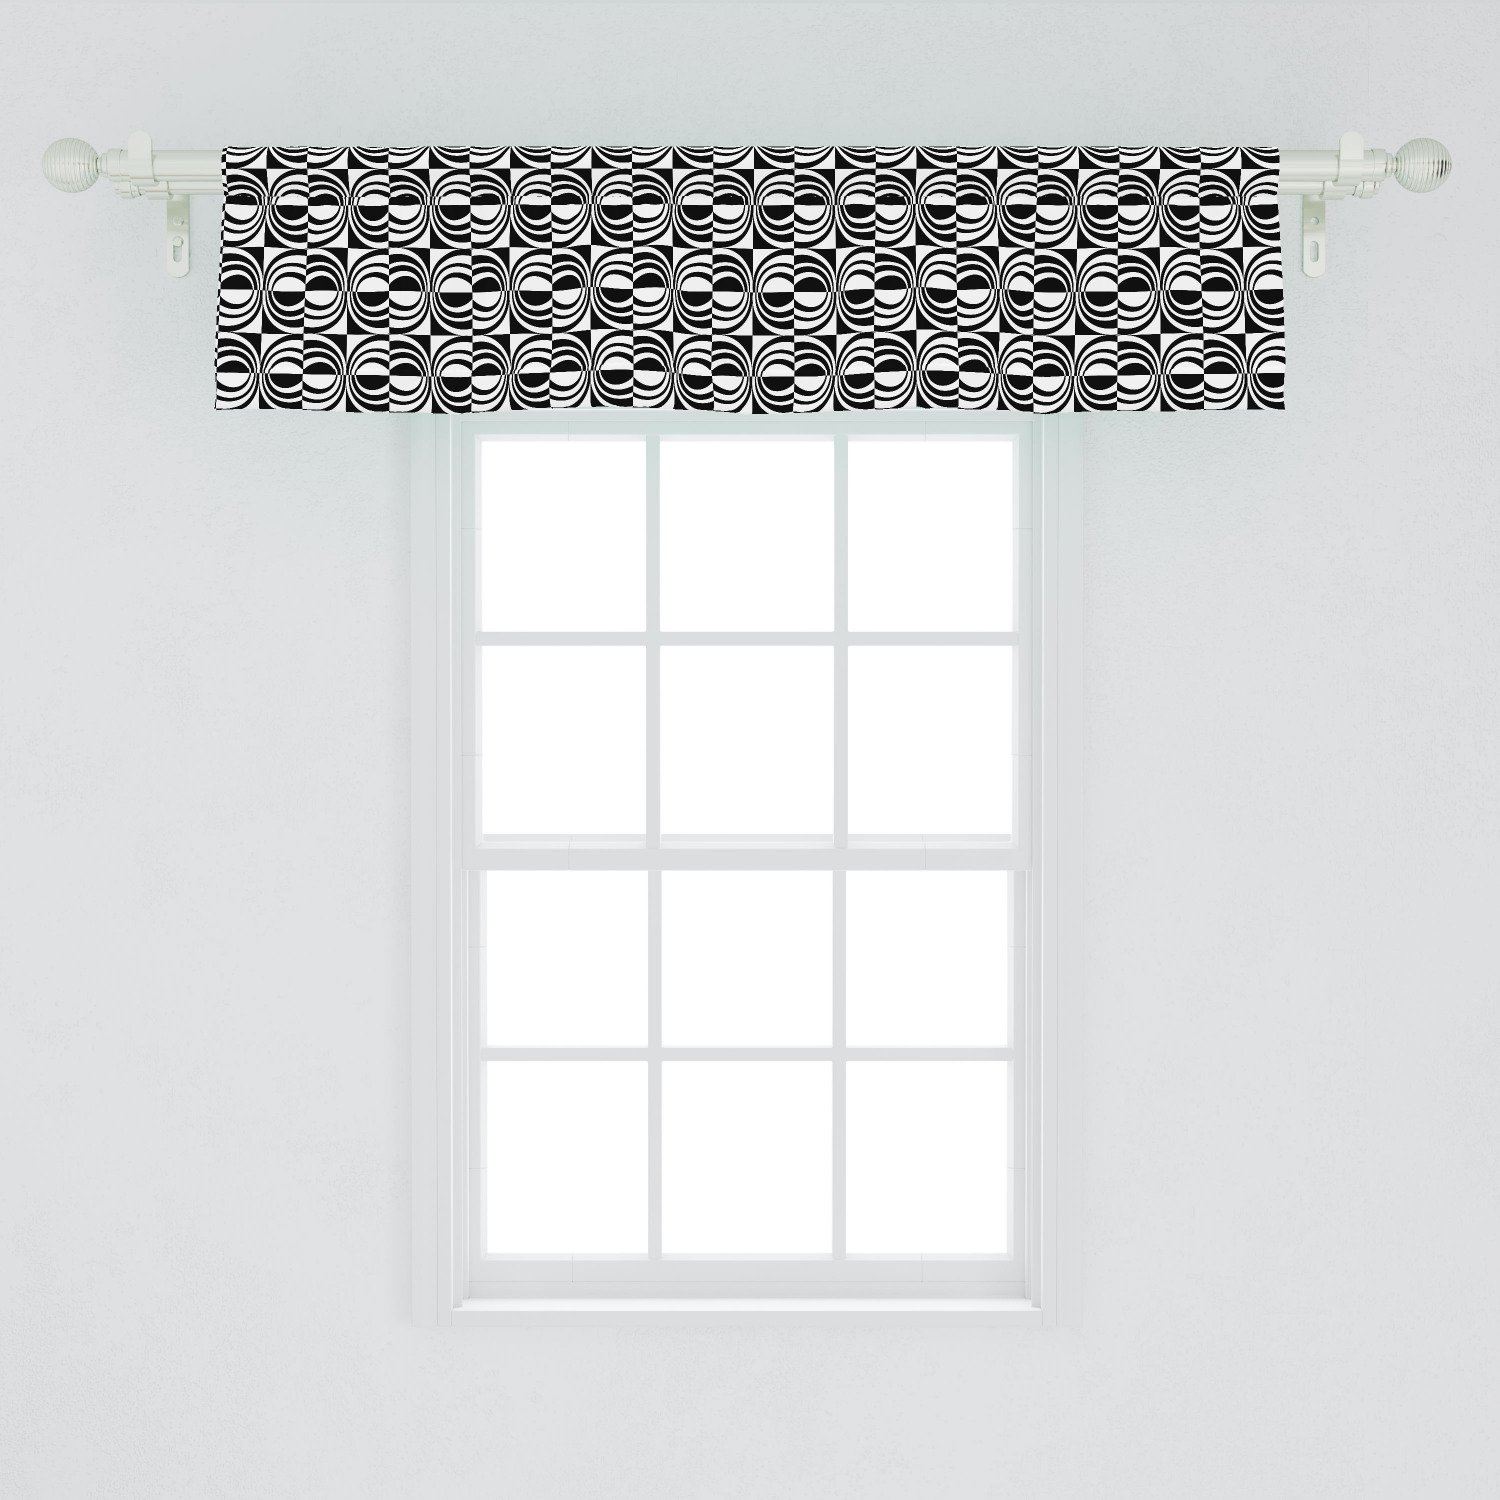 Contemporary Window Valance Checkered Pattern With Contrast Colors And Curvy Lines Modern Mosaic Curtain Valance For Kitchen Bedroom Decor With Rod Pocket By Ambesonne Walmart Com Walmart Com